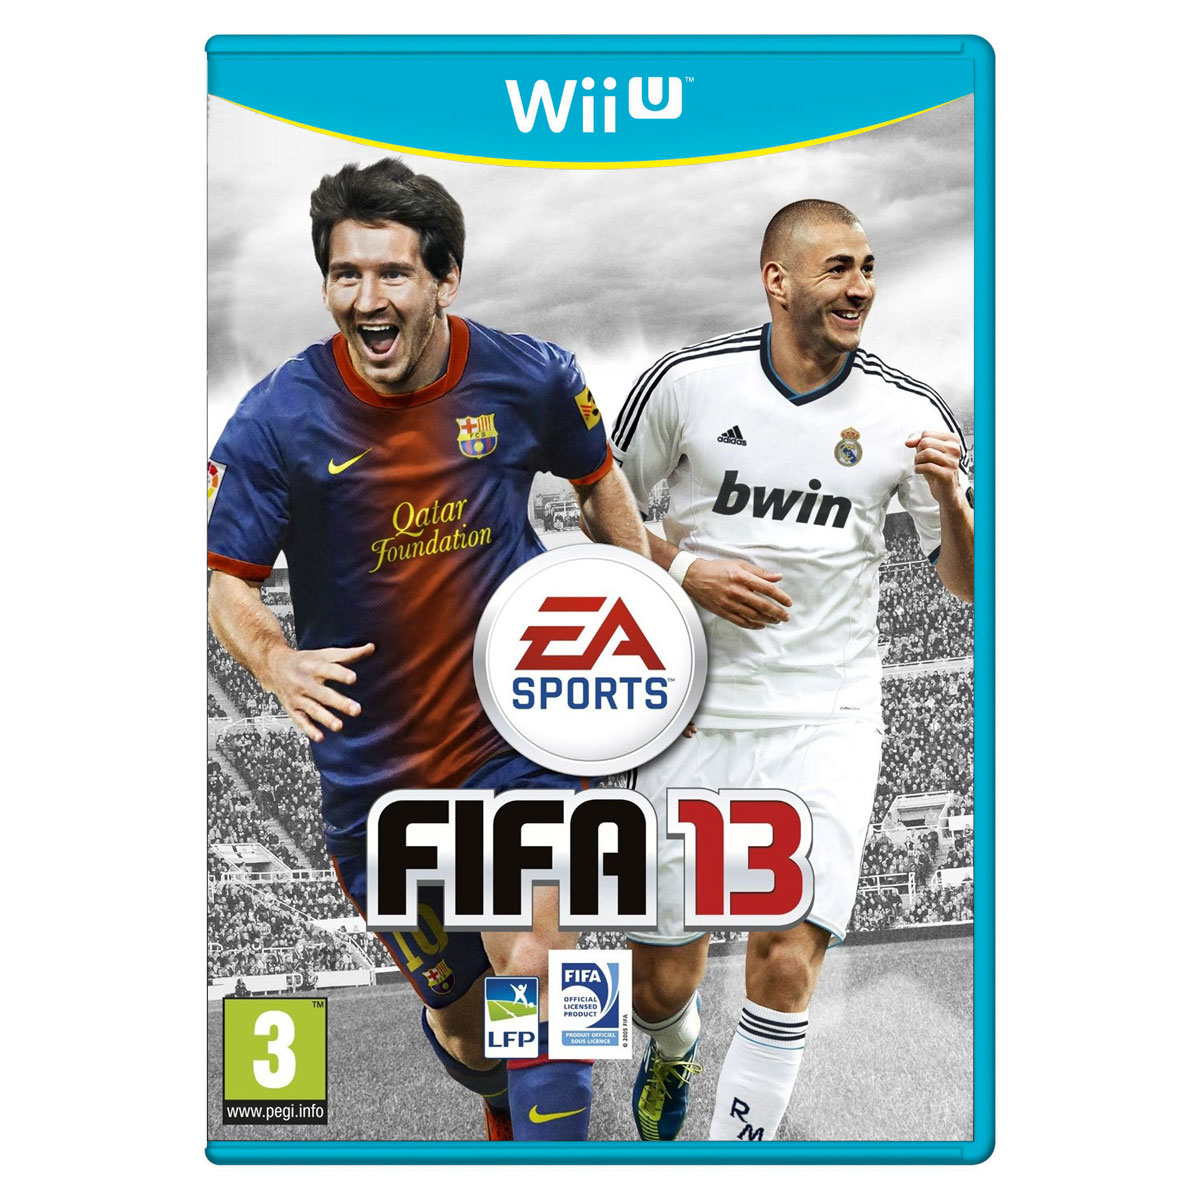 fifa 13 wii u jeux wii u electronic arts sur ldlc. Black Bedroom Furniture Sets. Home Design Ideas